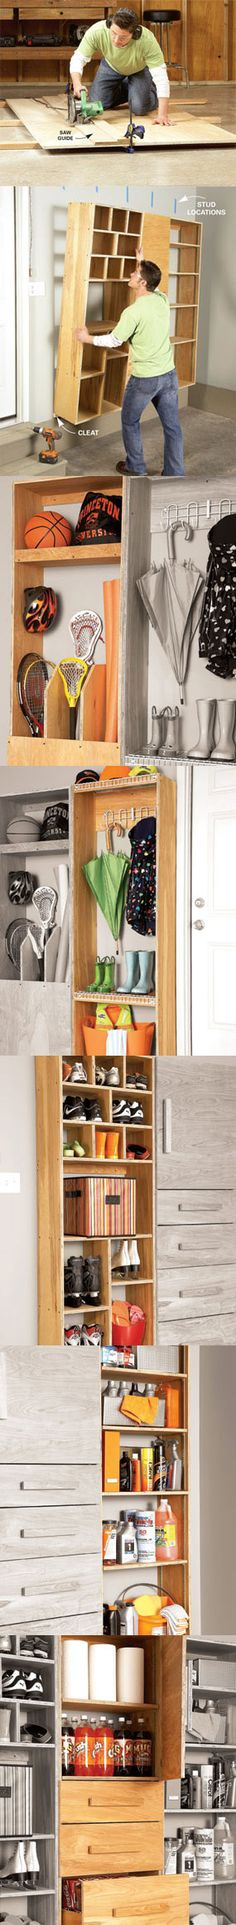 Entry doors from attached garages and mud rooms seem to attract clutter. These storage projects are designed to solve that problem, with special shelves, cabinets and drawers for toys, sports gear, shoes, boots, and all the other stuff that piles up by a heavily used entryway. Learn how to build your own backdoor garage storage center at http://www.familyhandyman.com/DIY-Projects/Home-Organization/Garage-Storage/garage-storage-backdoor-storage-center/View-All